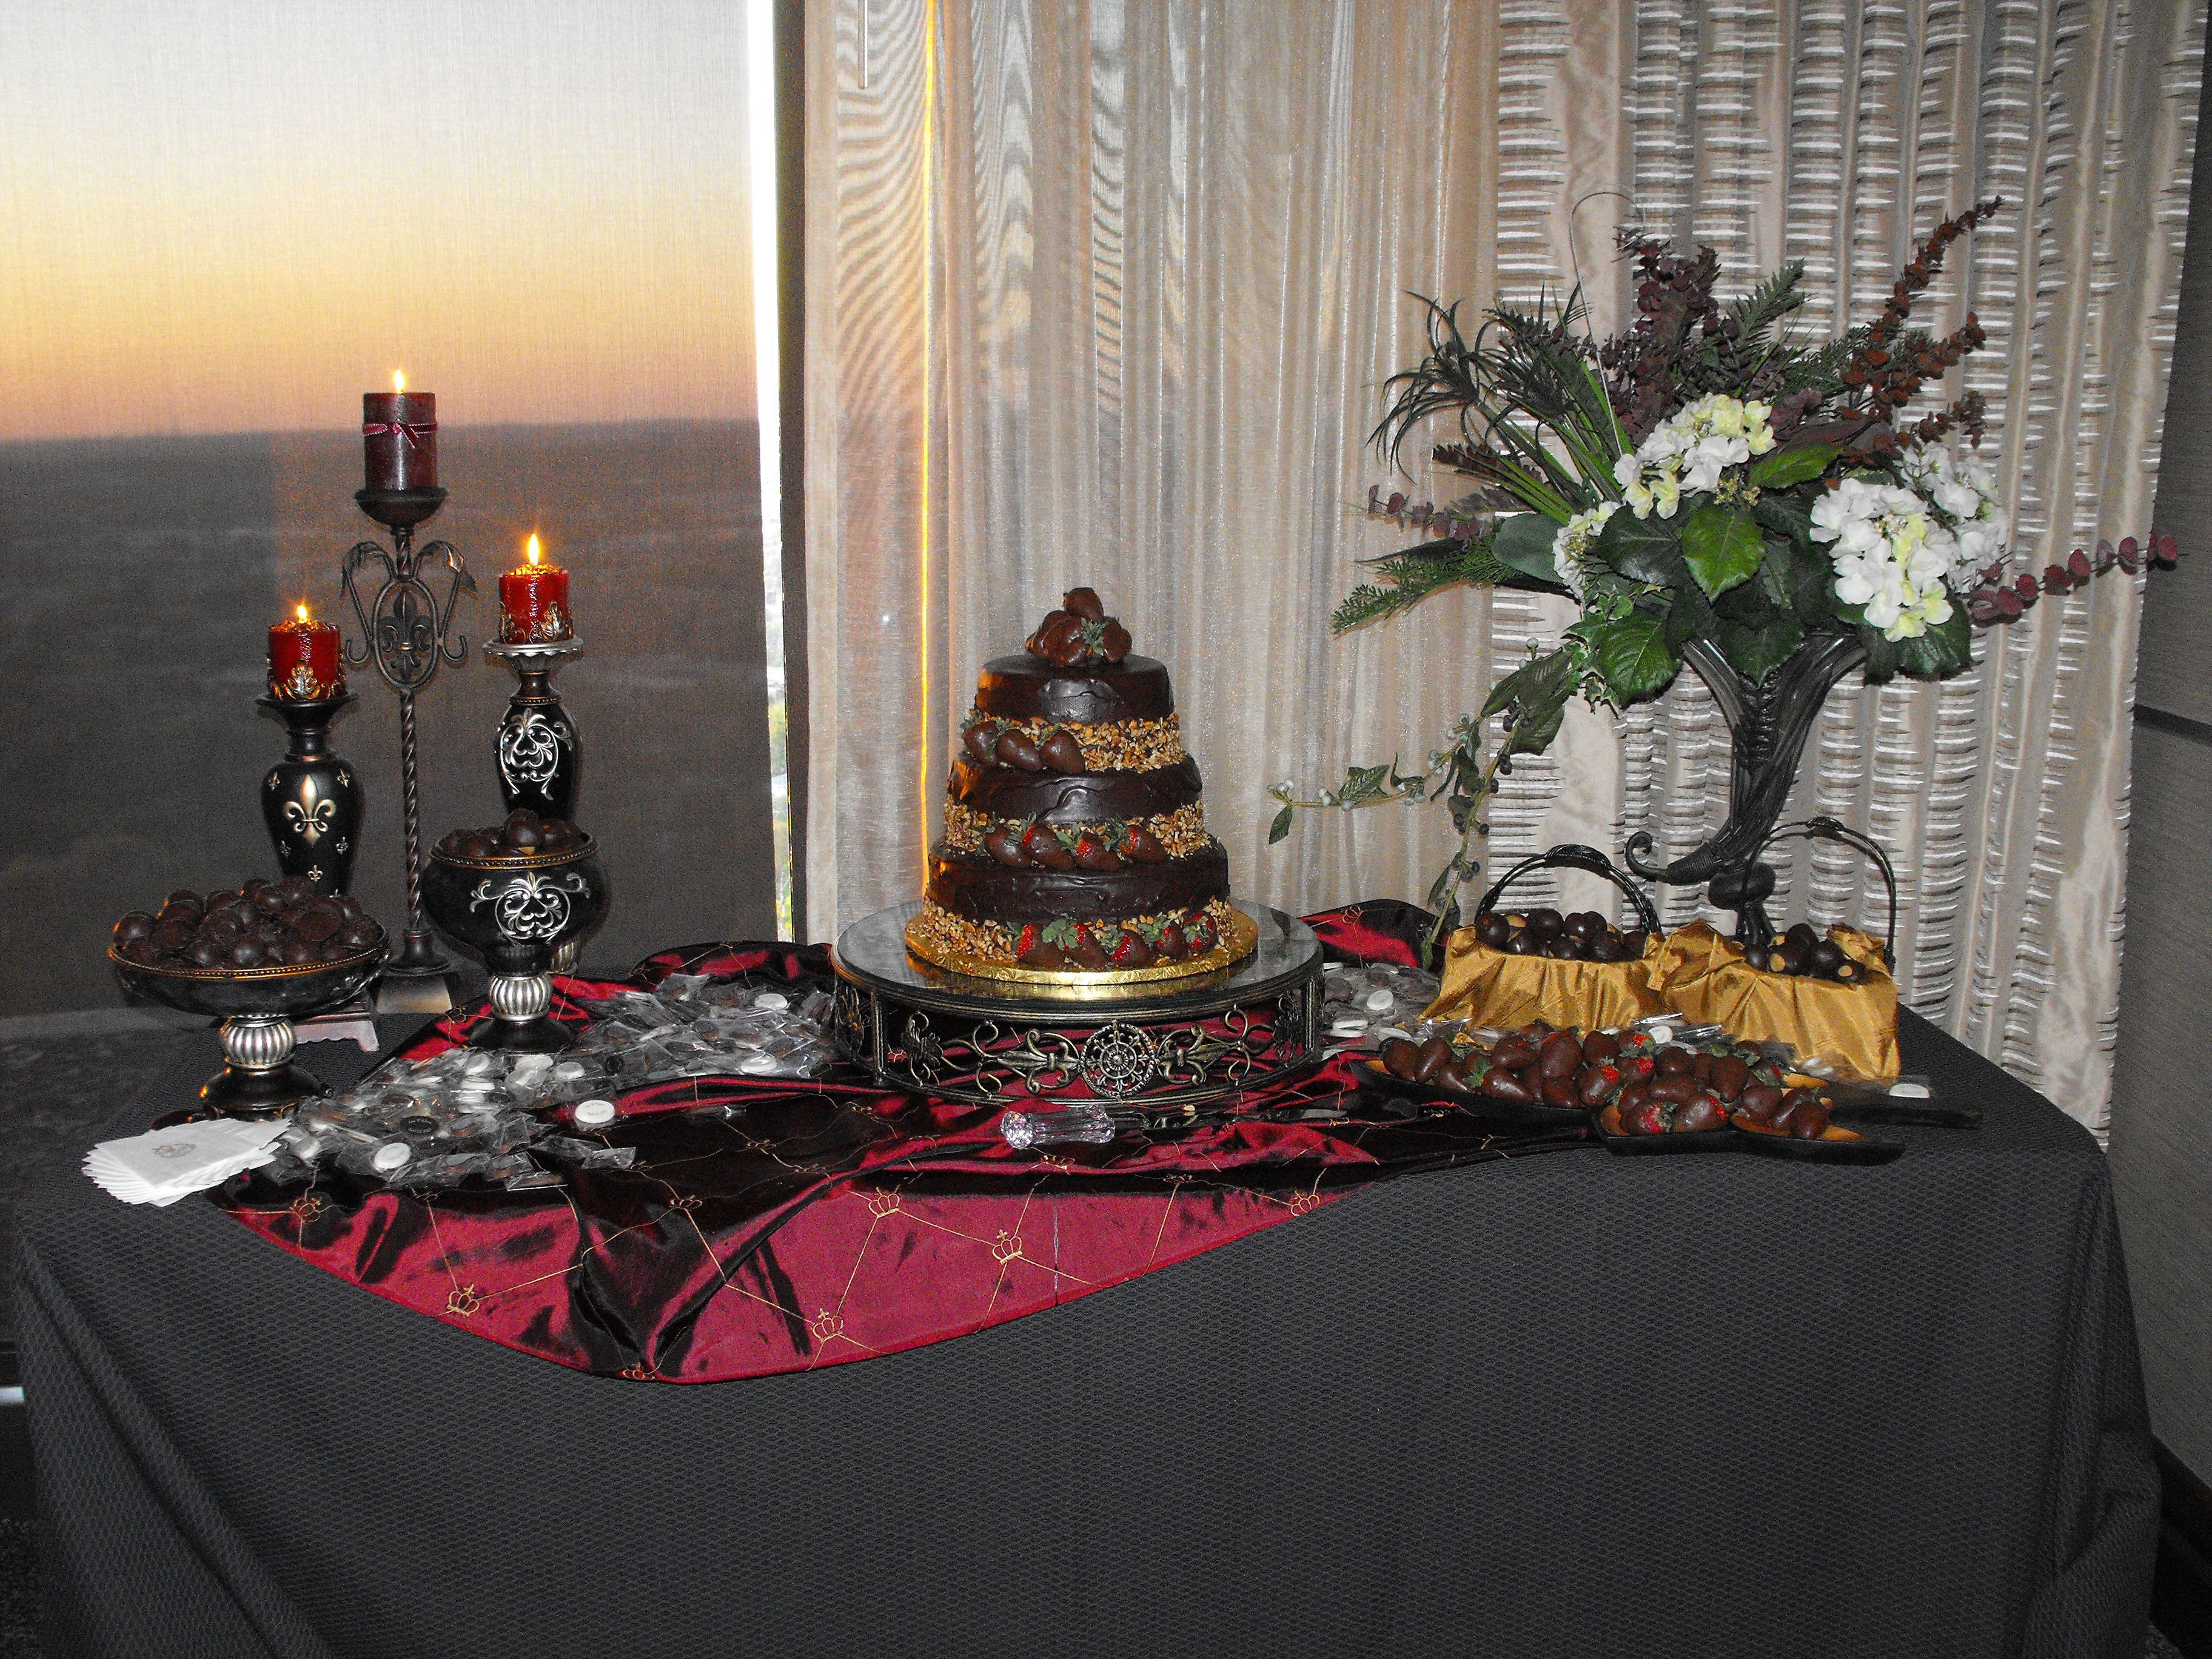 Grooms Cake Display. To create this cakestand for my son's wedding, I bought a small round metal table, cut off the legs, then had a glass top made to fit. Chocolate cake, Oreo truffles, buckeyes and chocolate dipped strawberrries - yum!